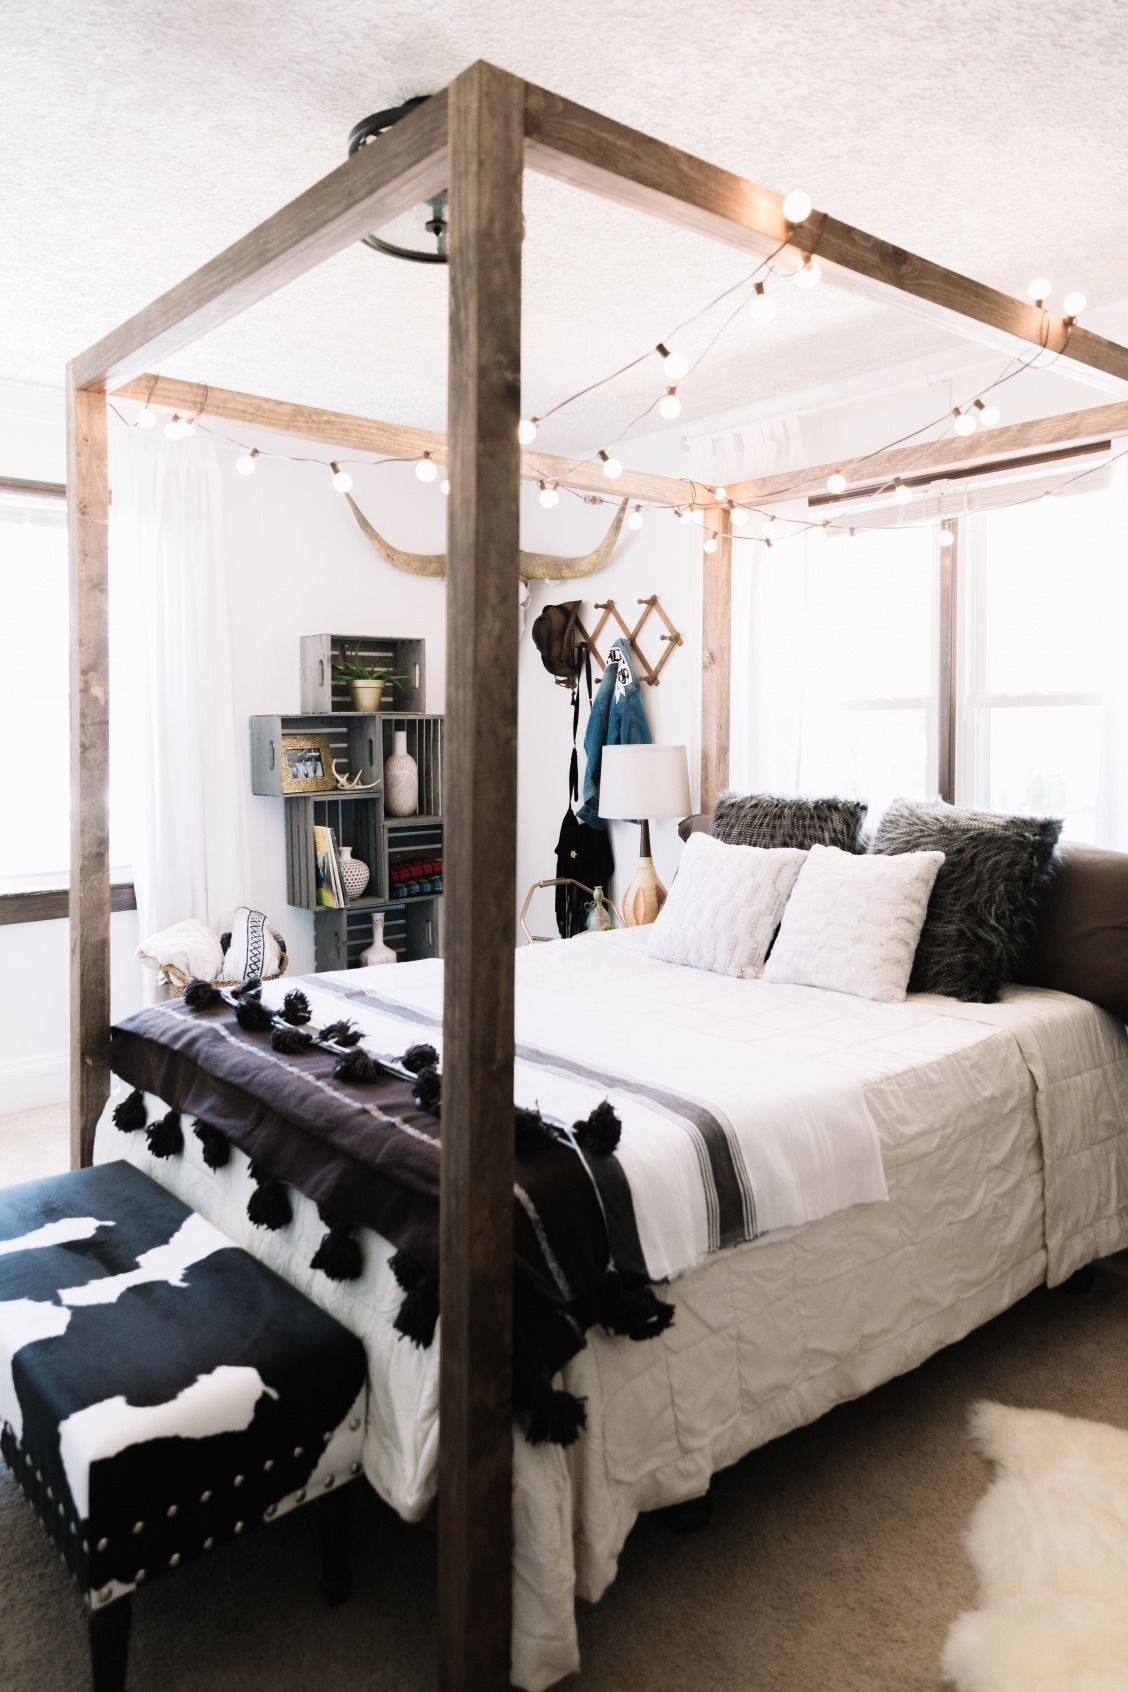 A Nashville rental gets an All-American bedroom makeover that would please any landlord. & A Nashville rental gets an All-American bedroom makeover that ...